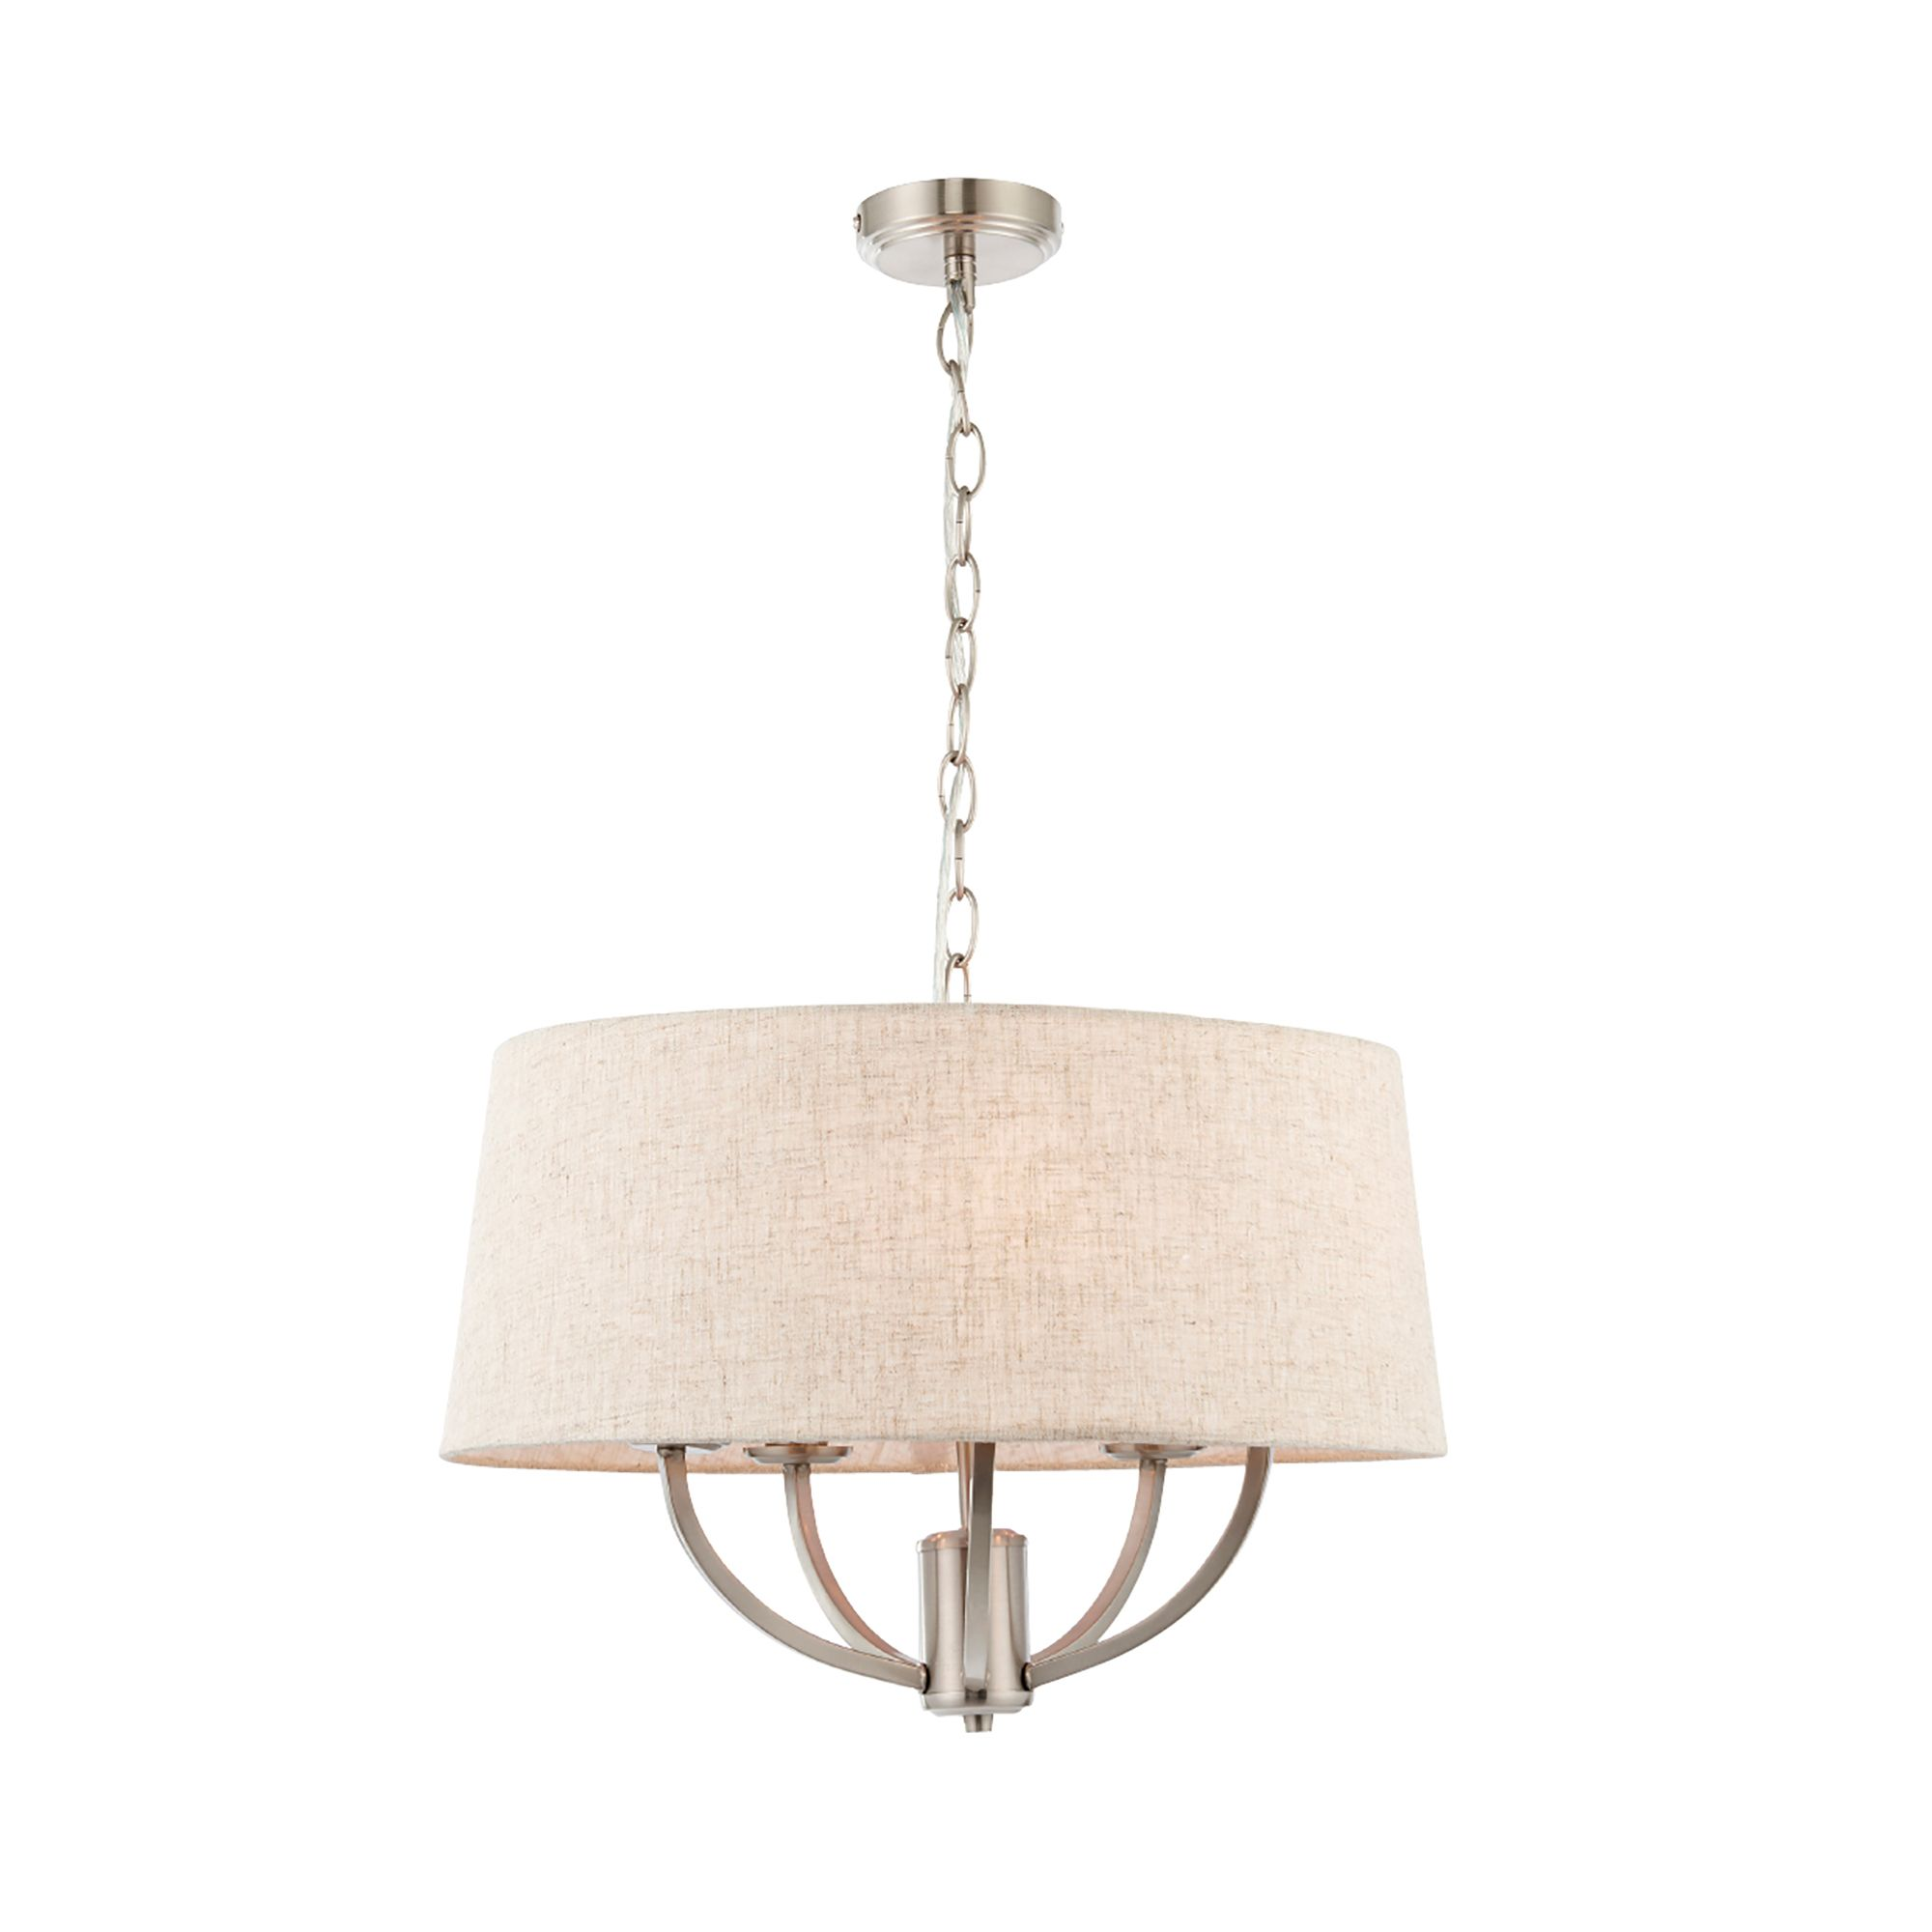 buy online 60522 4ea41 Hampstead Natural Linen Effect 5 Lamp Ceiling Light